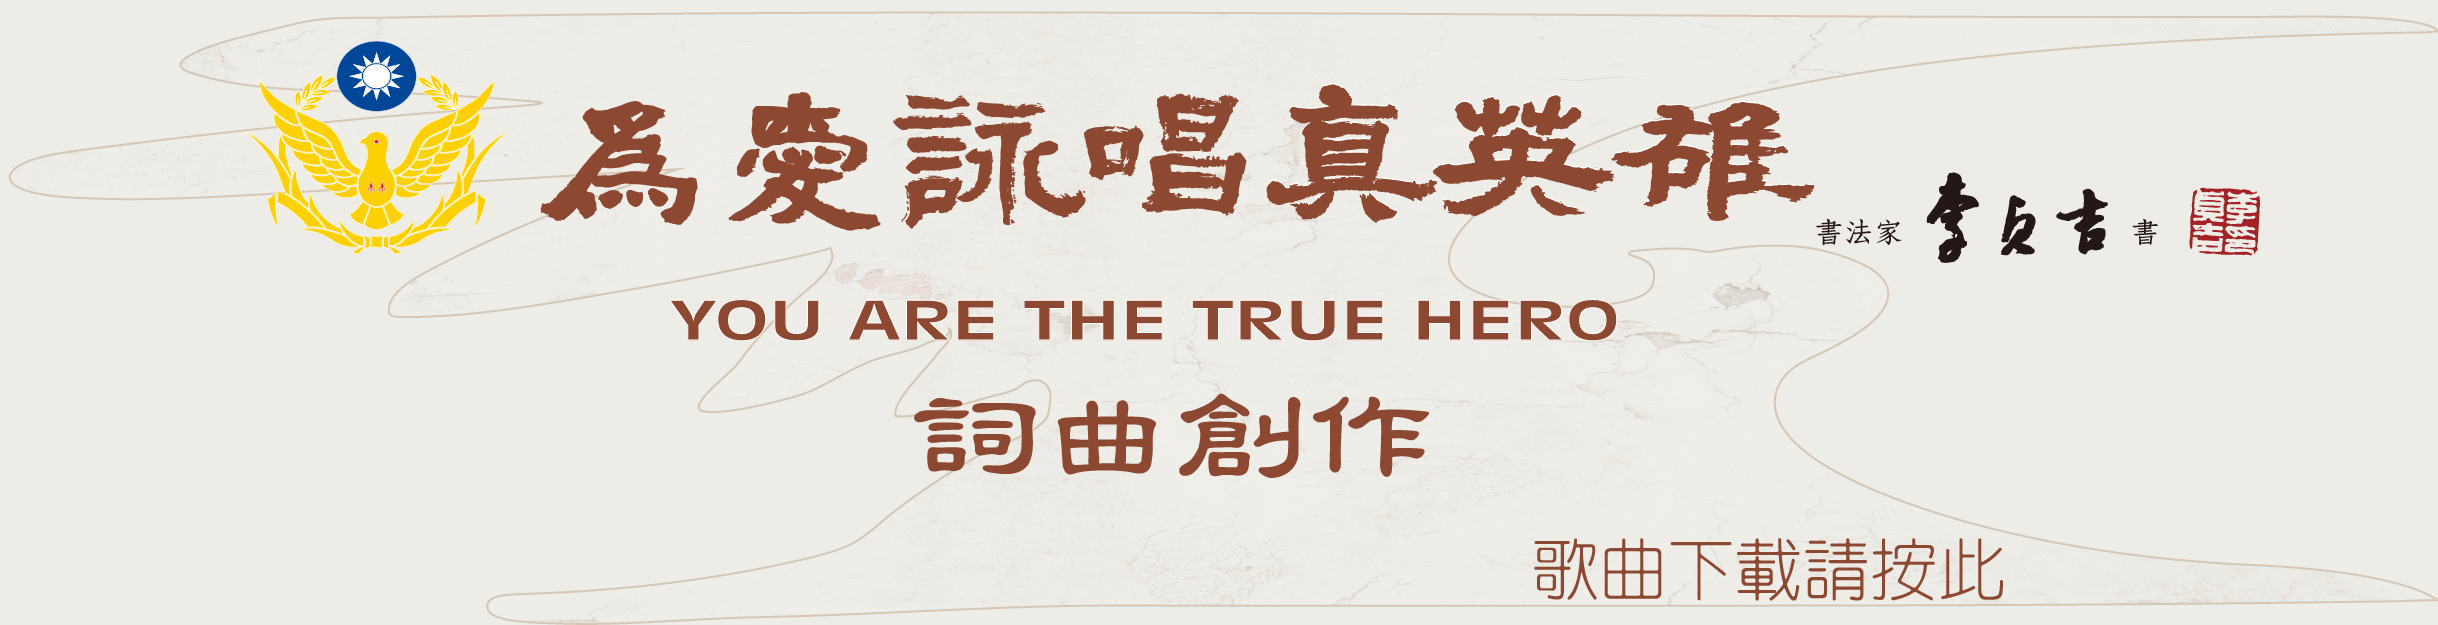 為愛詠唱『真英雄』~You are the true hero